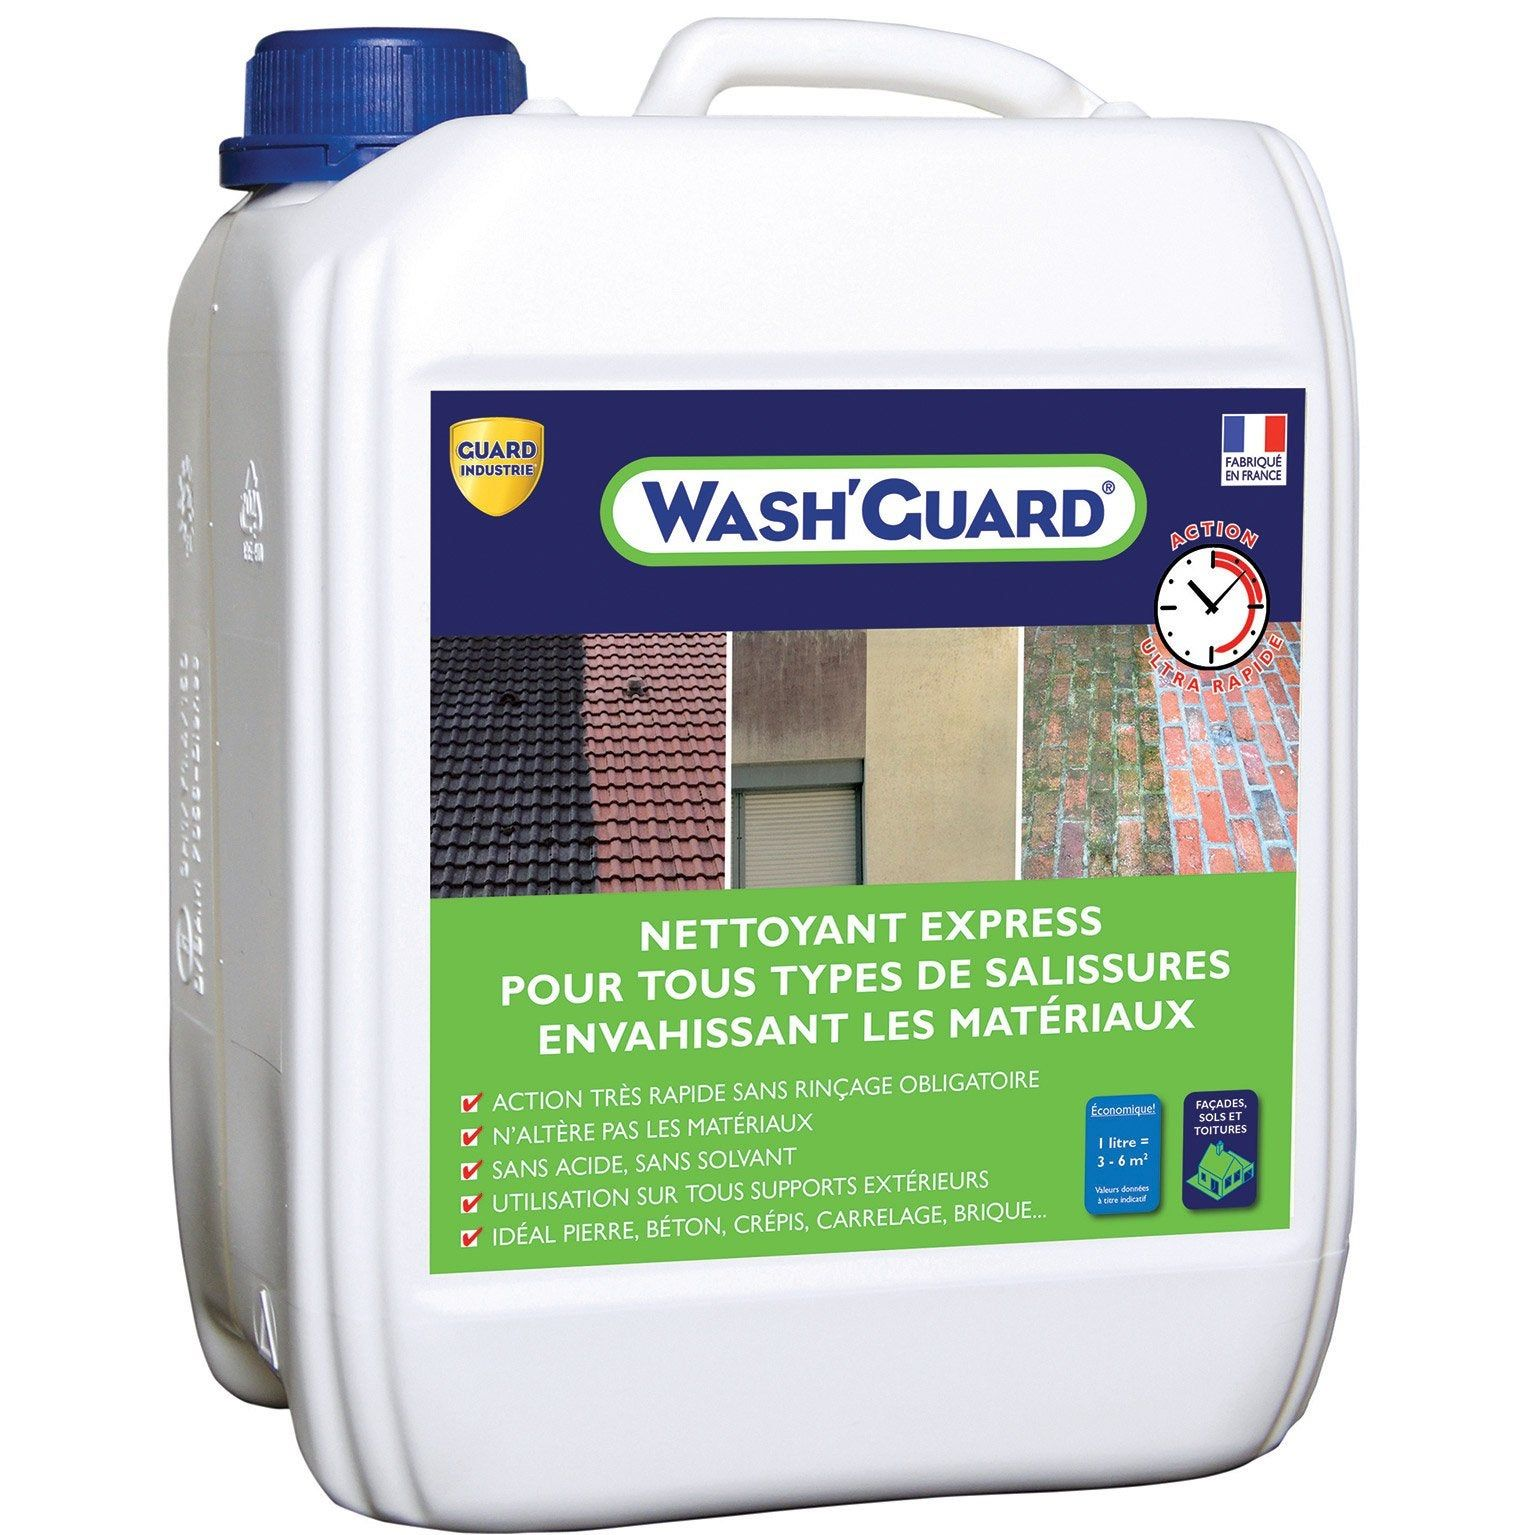 Nettoyant Guard Industrie Express Wash Guard 5 L Incolore Nettoyer Terrasse Nettoyer Sol Et Terrasse Beton